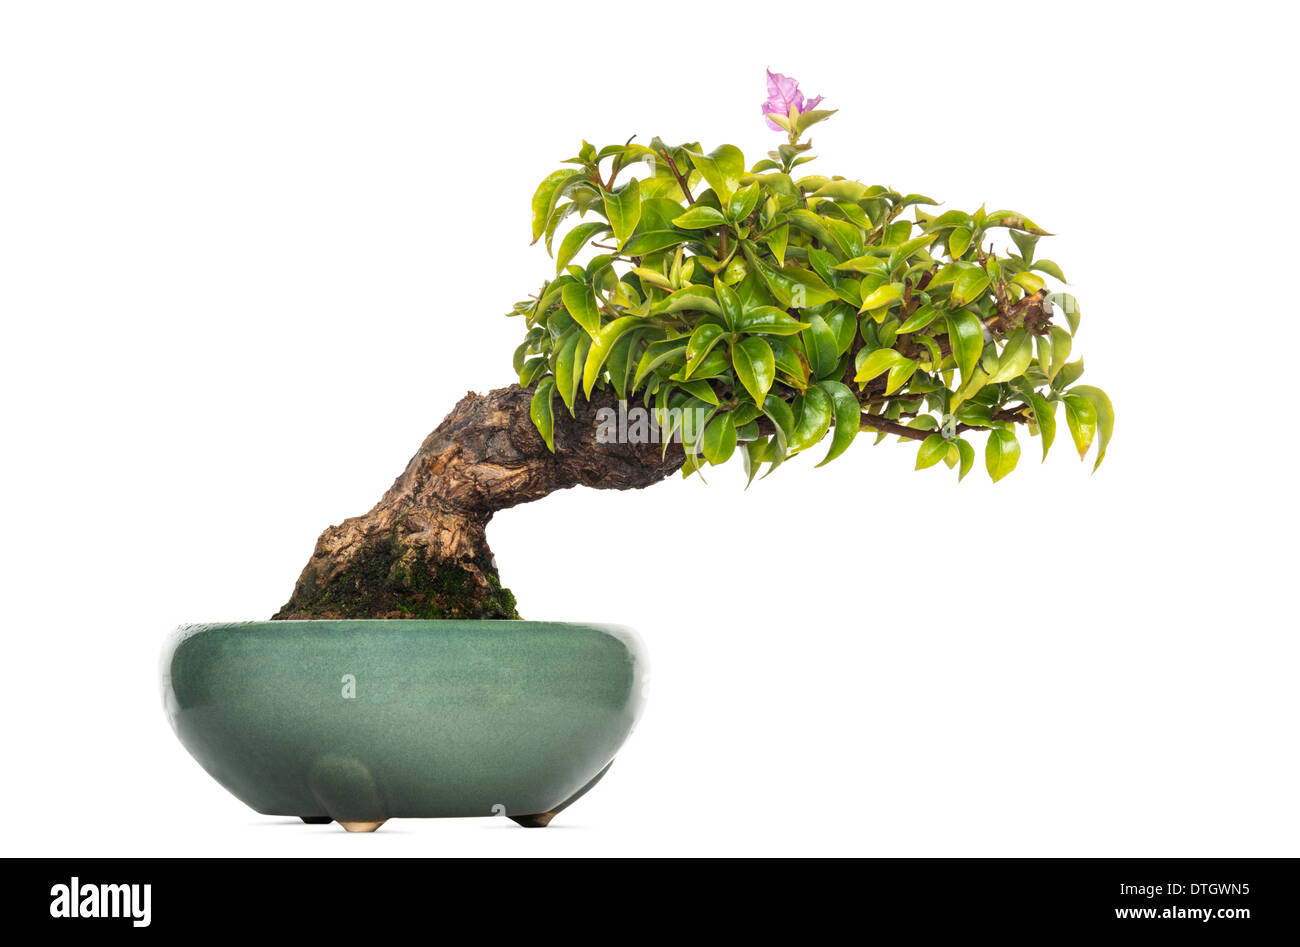 Bougainvillea bonsai tree, Bougainvillea glabra, against white background - Stock Image